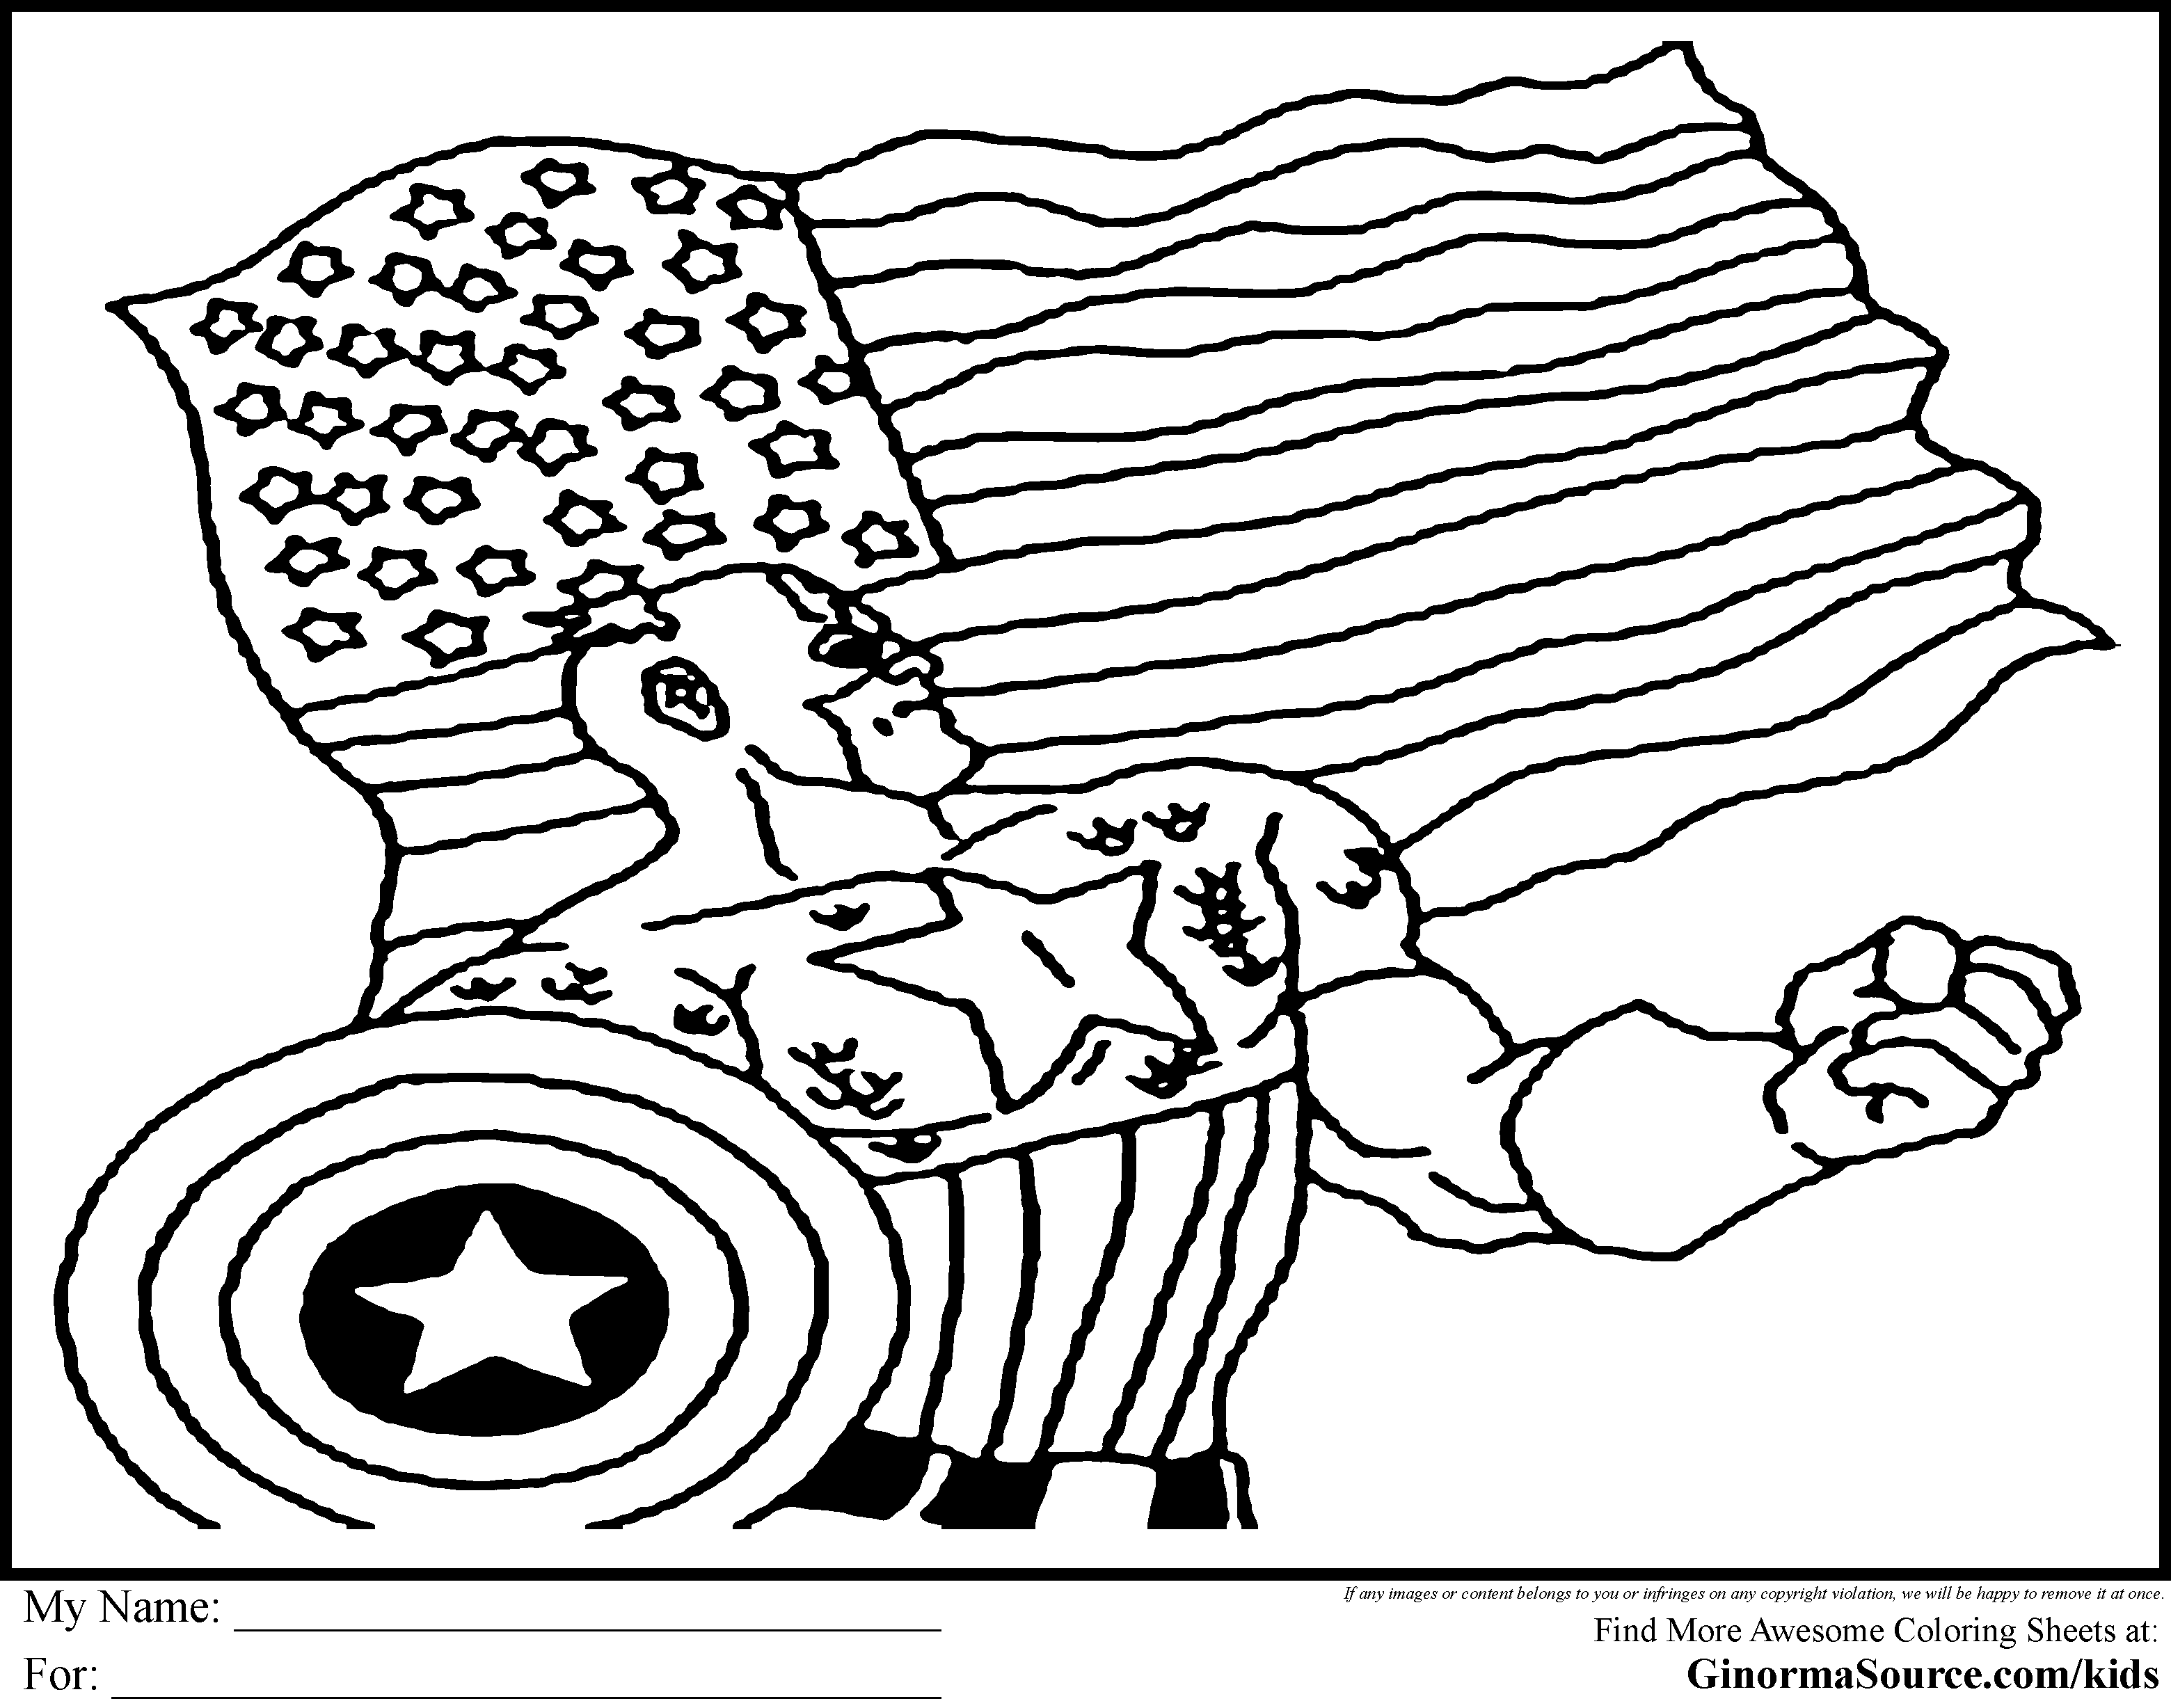 Avengers Captain America Coloring Pages